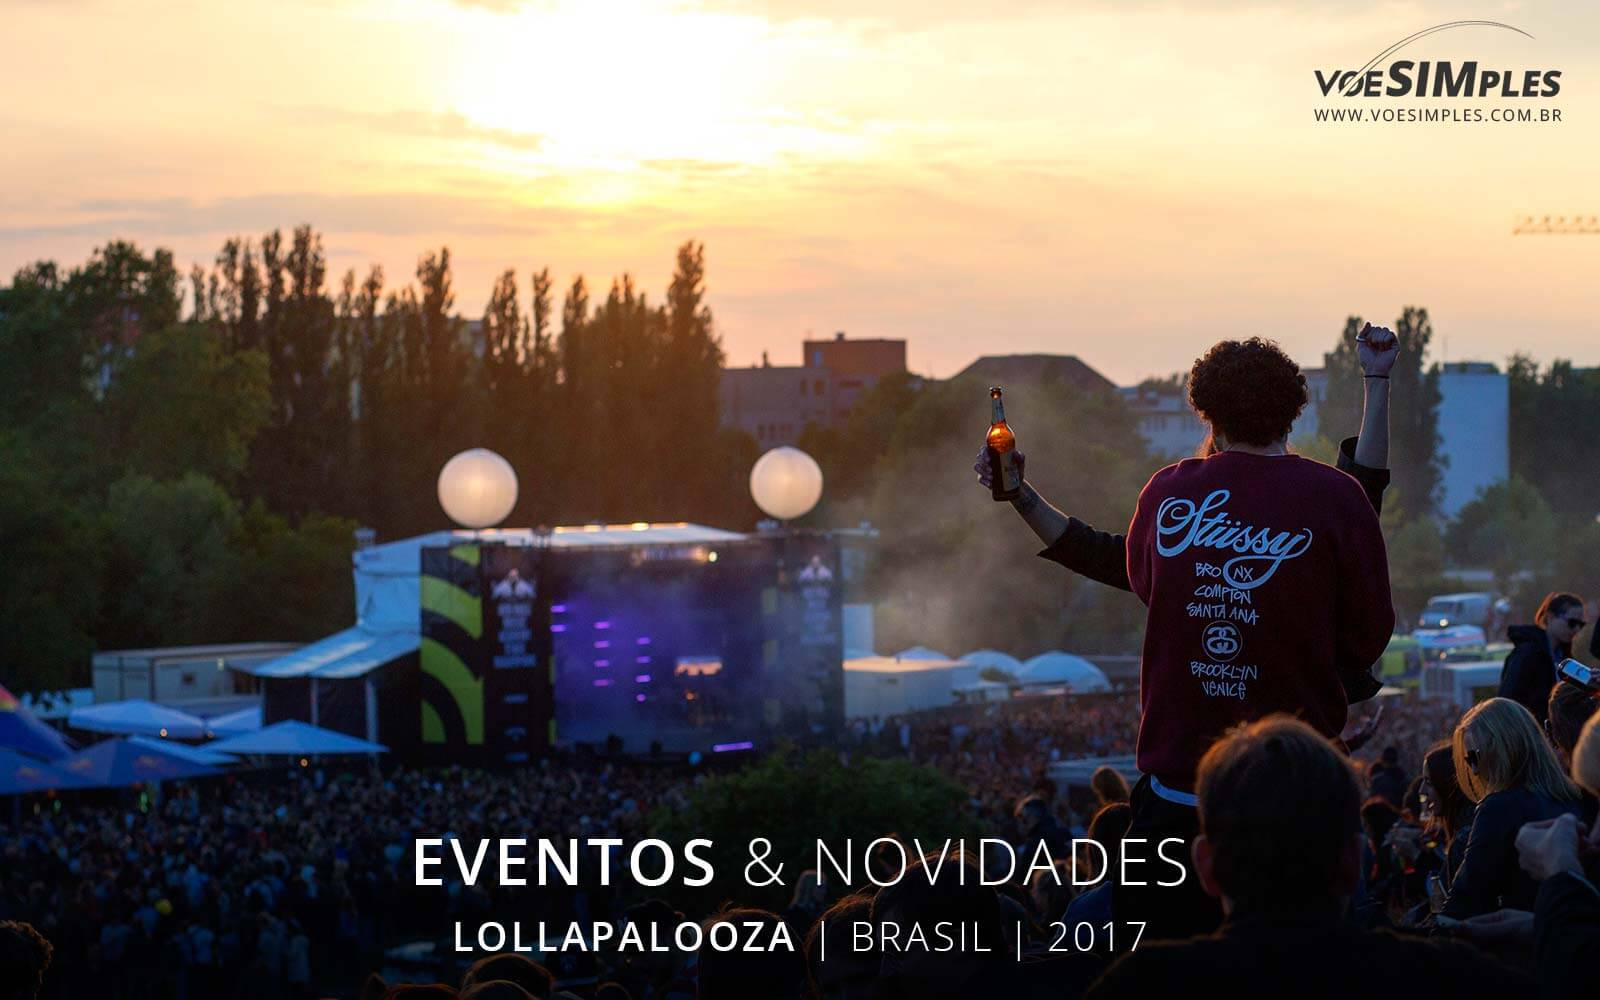 tipo-nome-brasil-2017-voesimples-passagens-aereas-promocionais-nome-passagens-promo-nome-2017-04